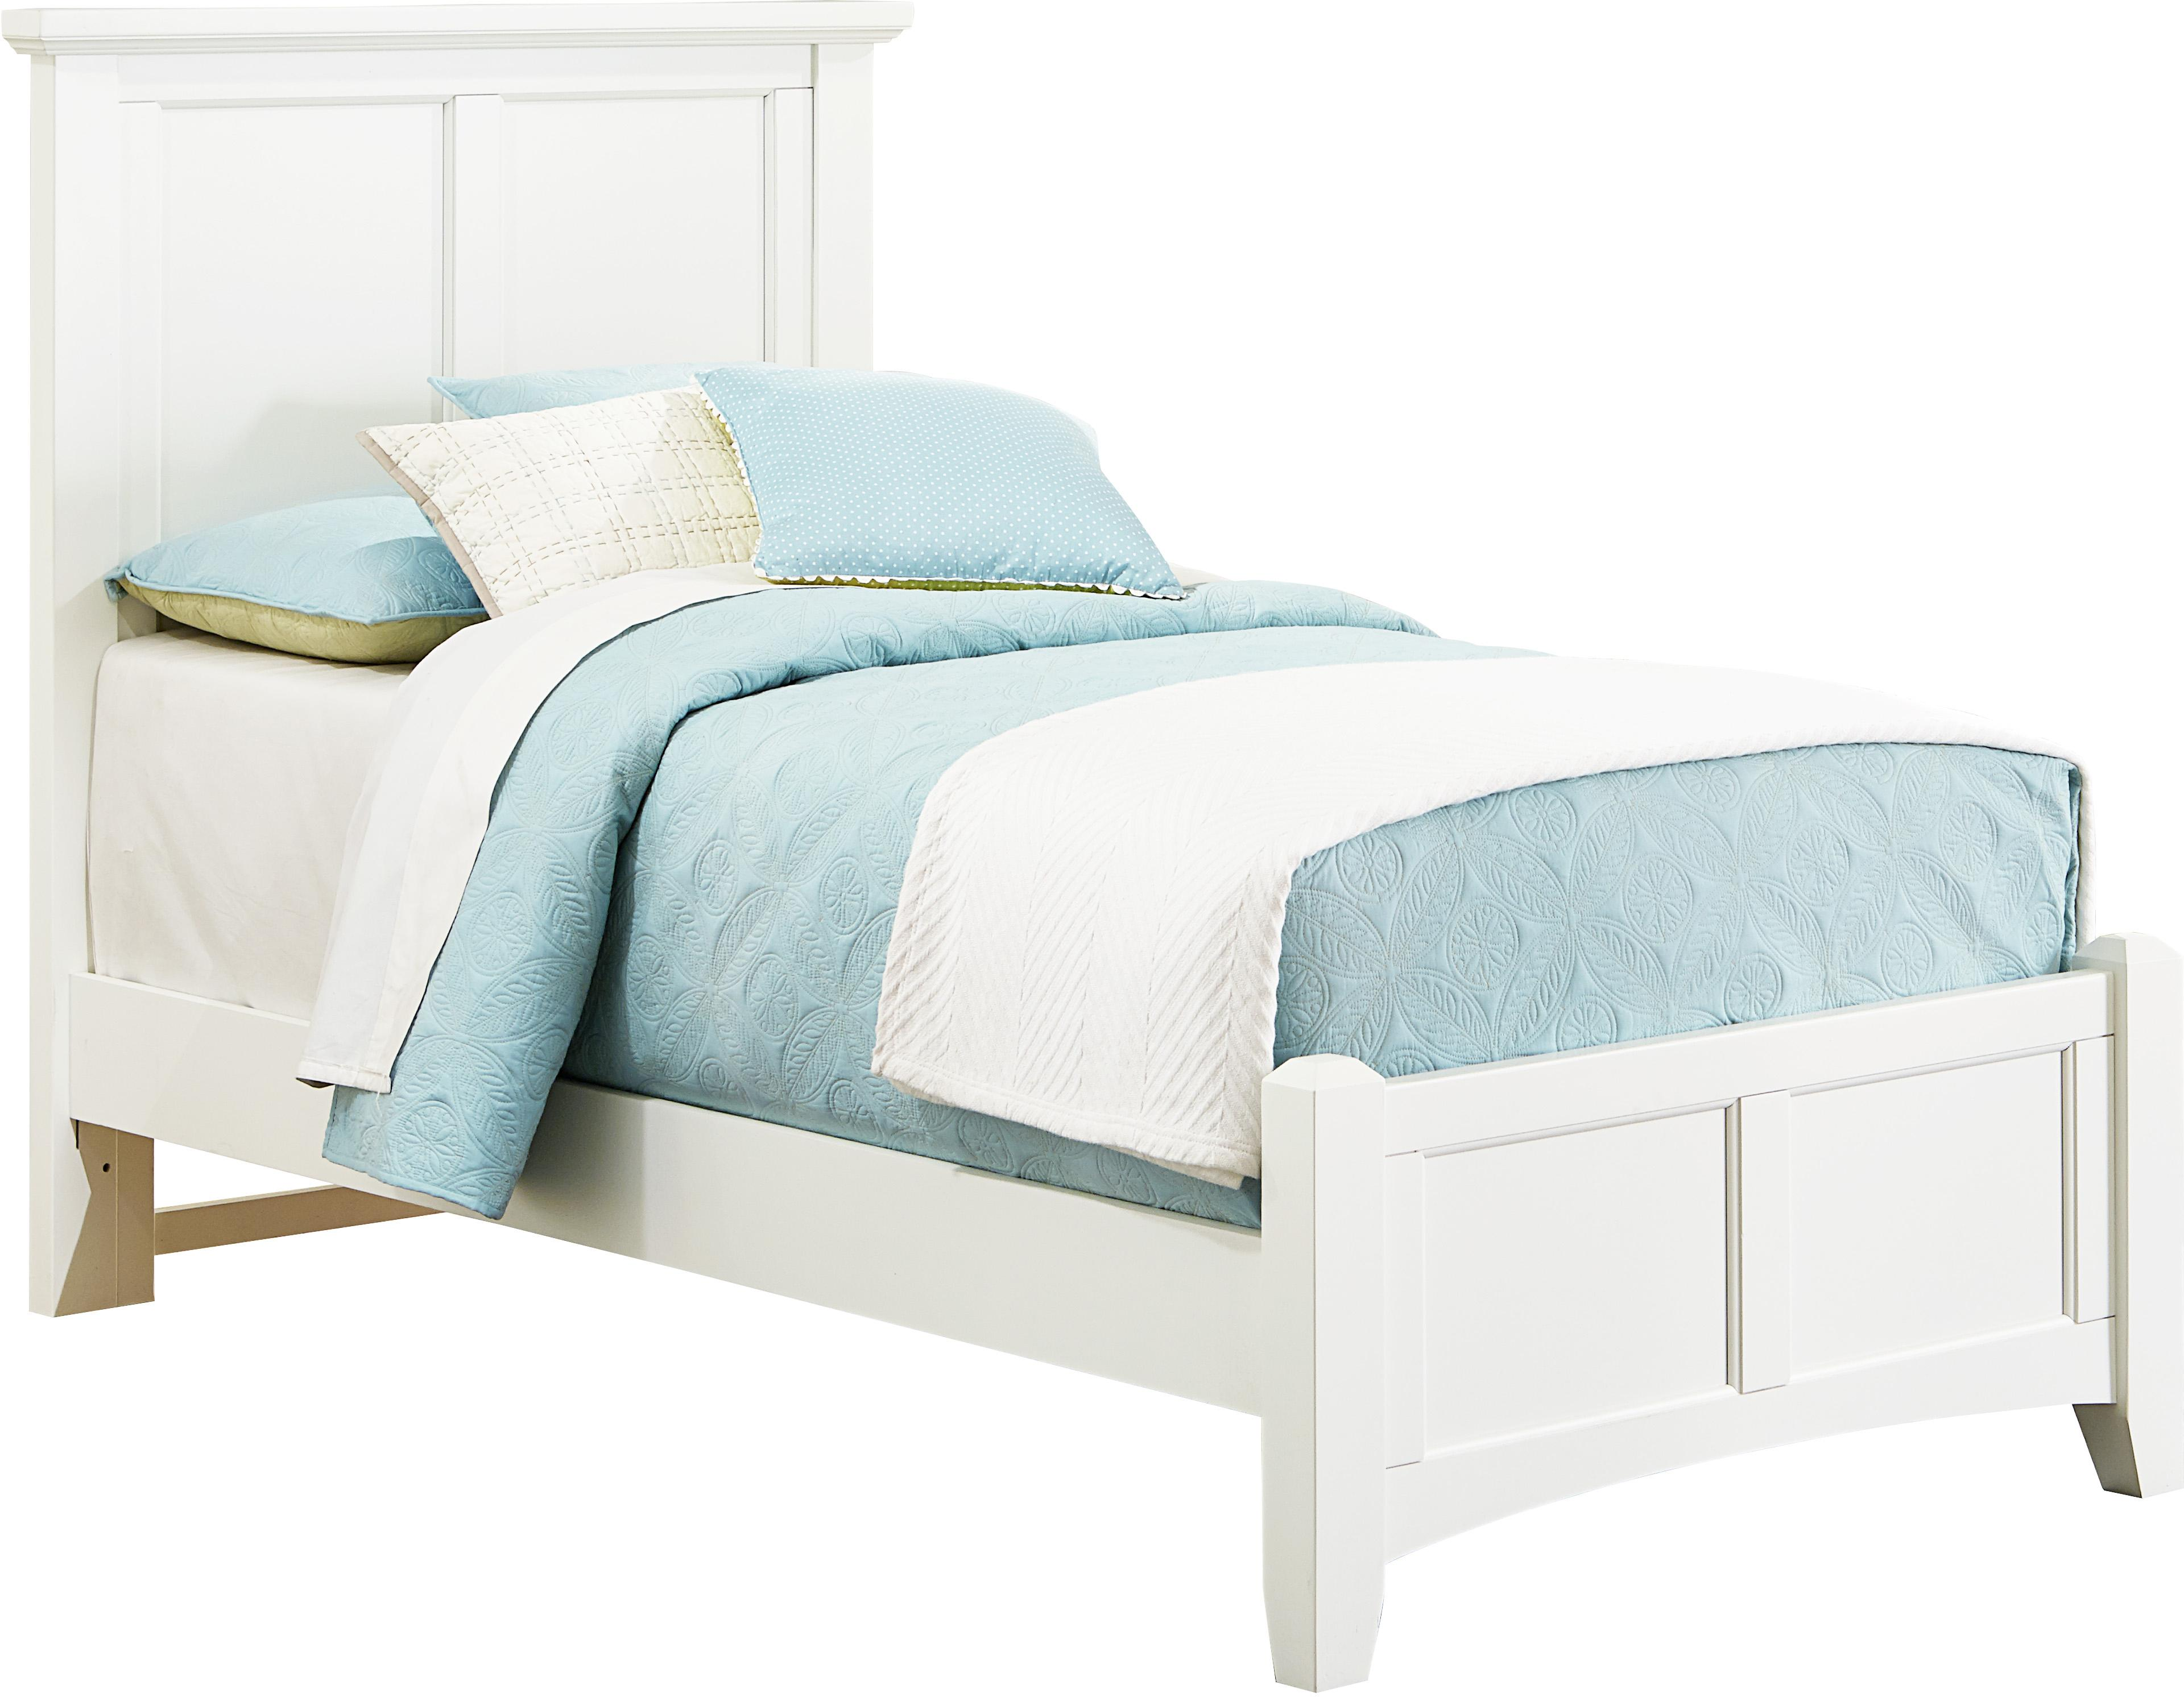 Bunkhouse Twin Mansion Bed by Vaughan-Bassett at Crowley Furniture & Mattress